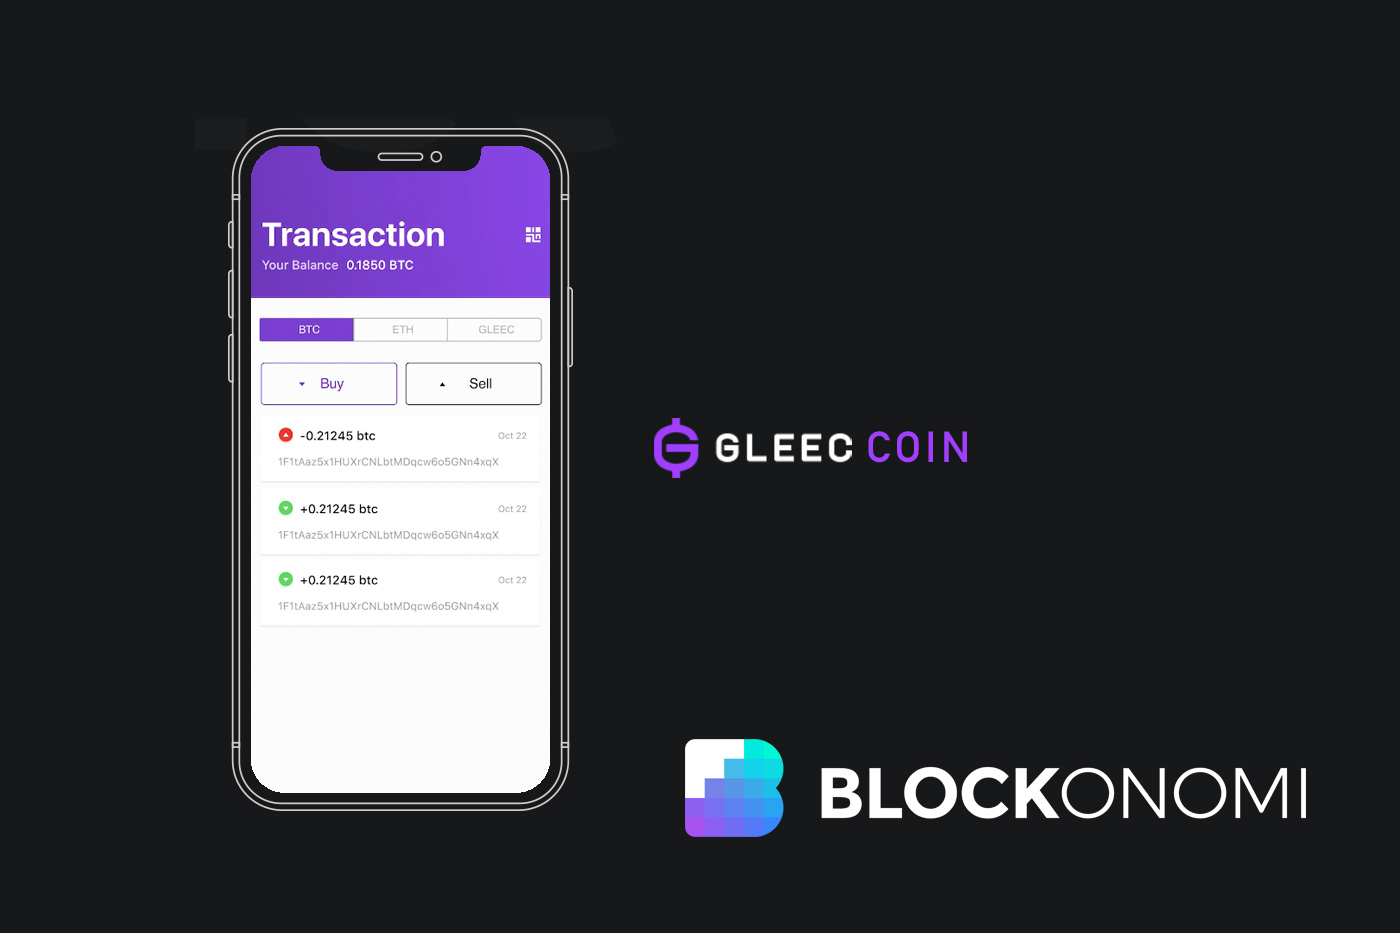 Gleec Coin Guide: A Blockchain Based Digital Ecosystem